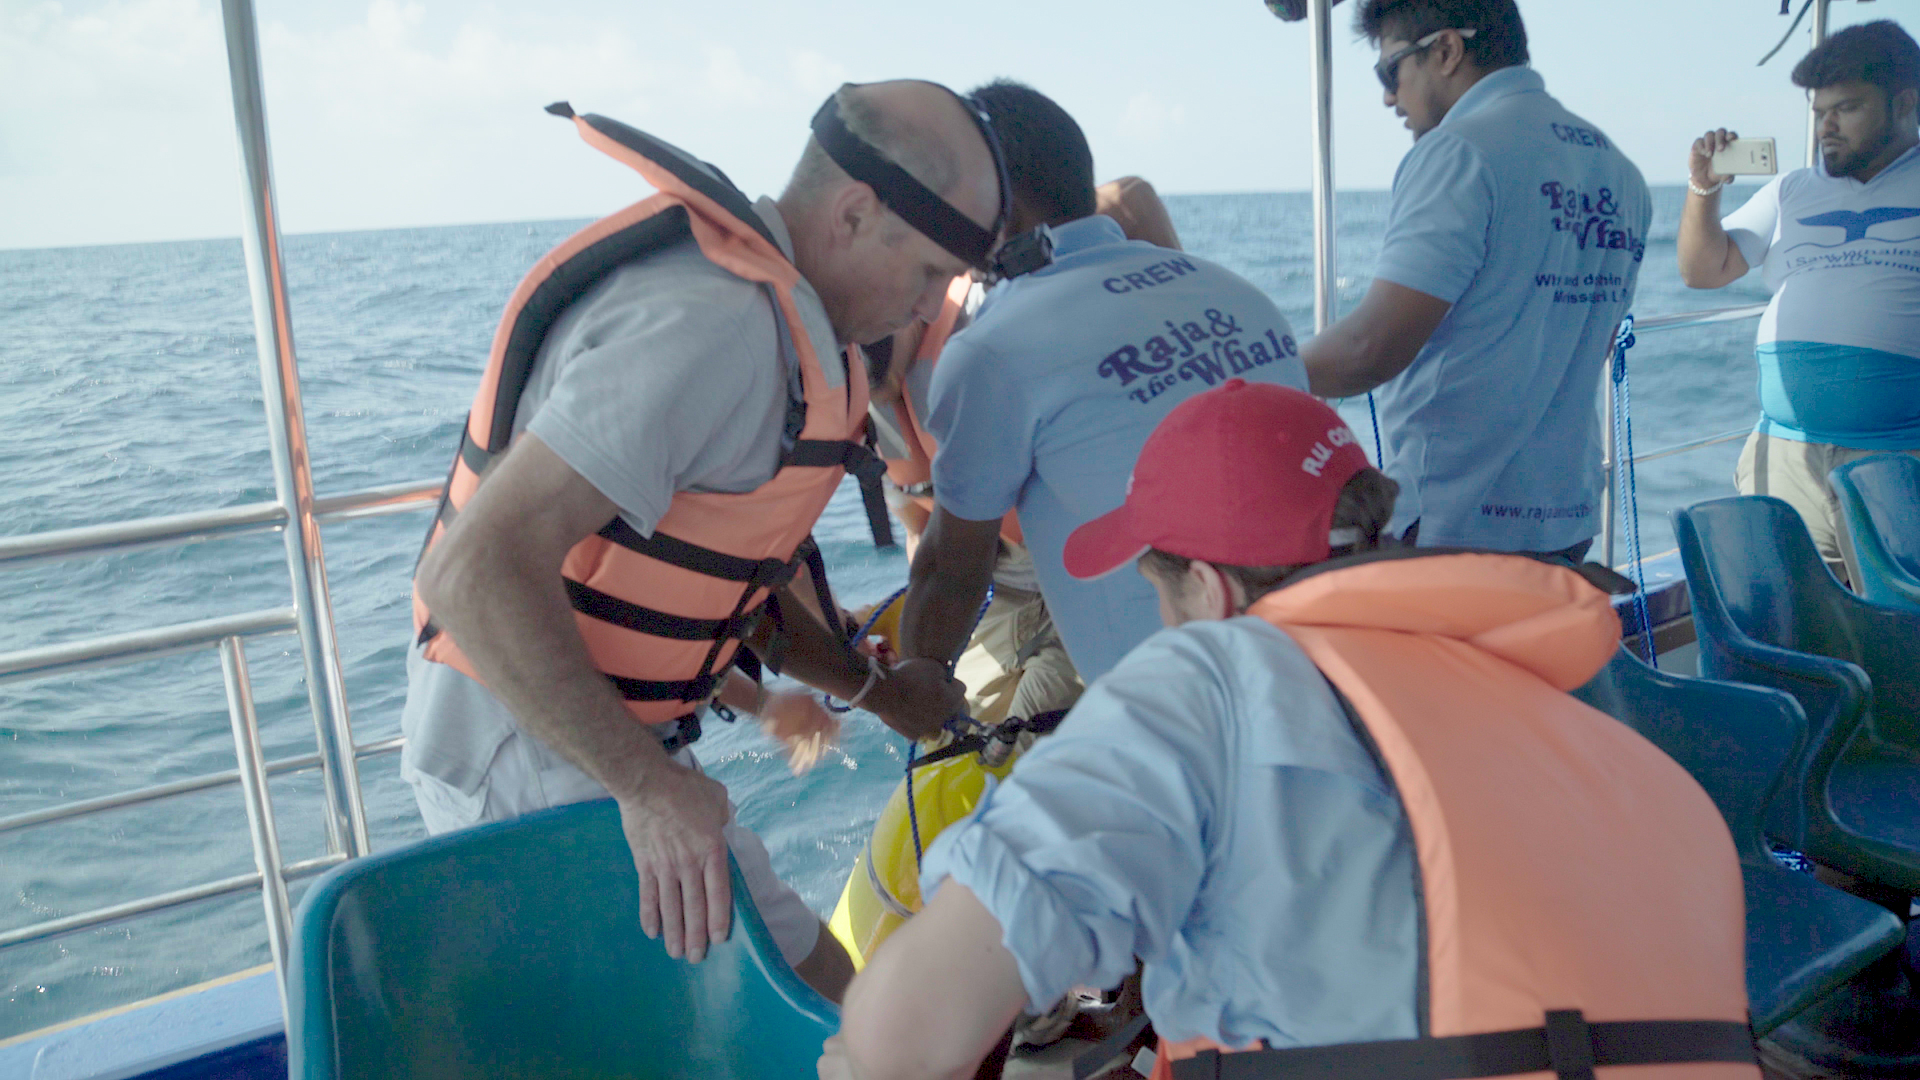 RU29 is lifted aboard a Sri Lankan whale watching vessel by a team from the Sri Lanka, Australia, and the U.S.